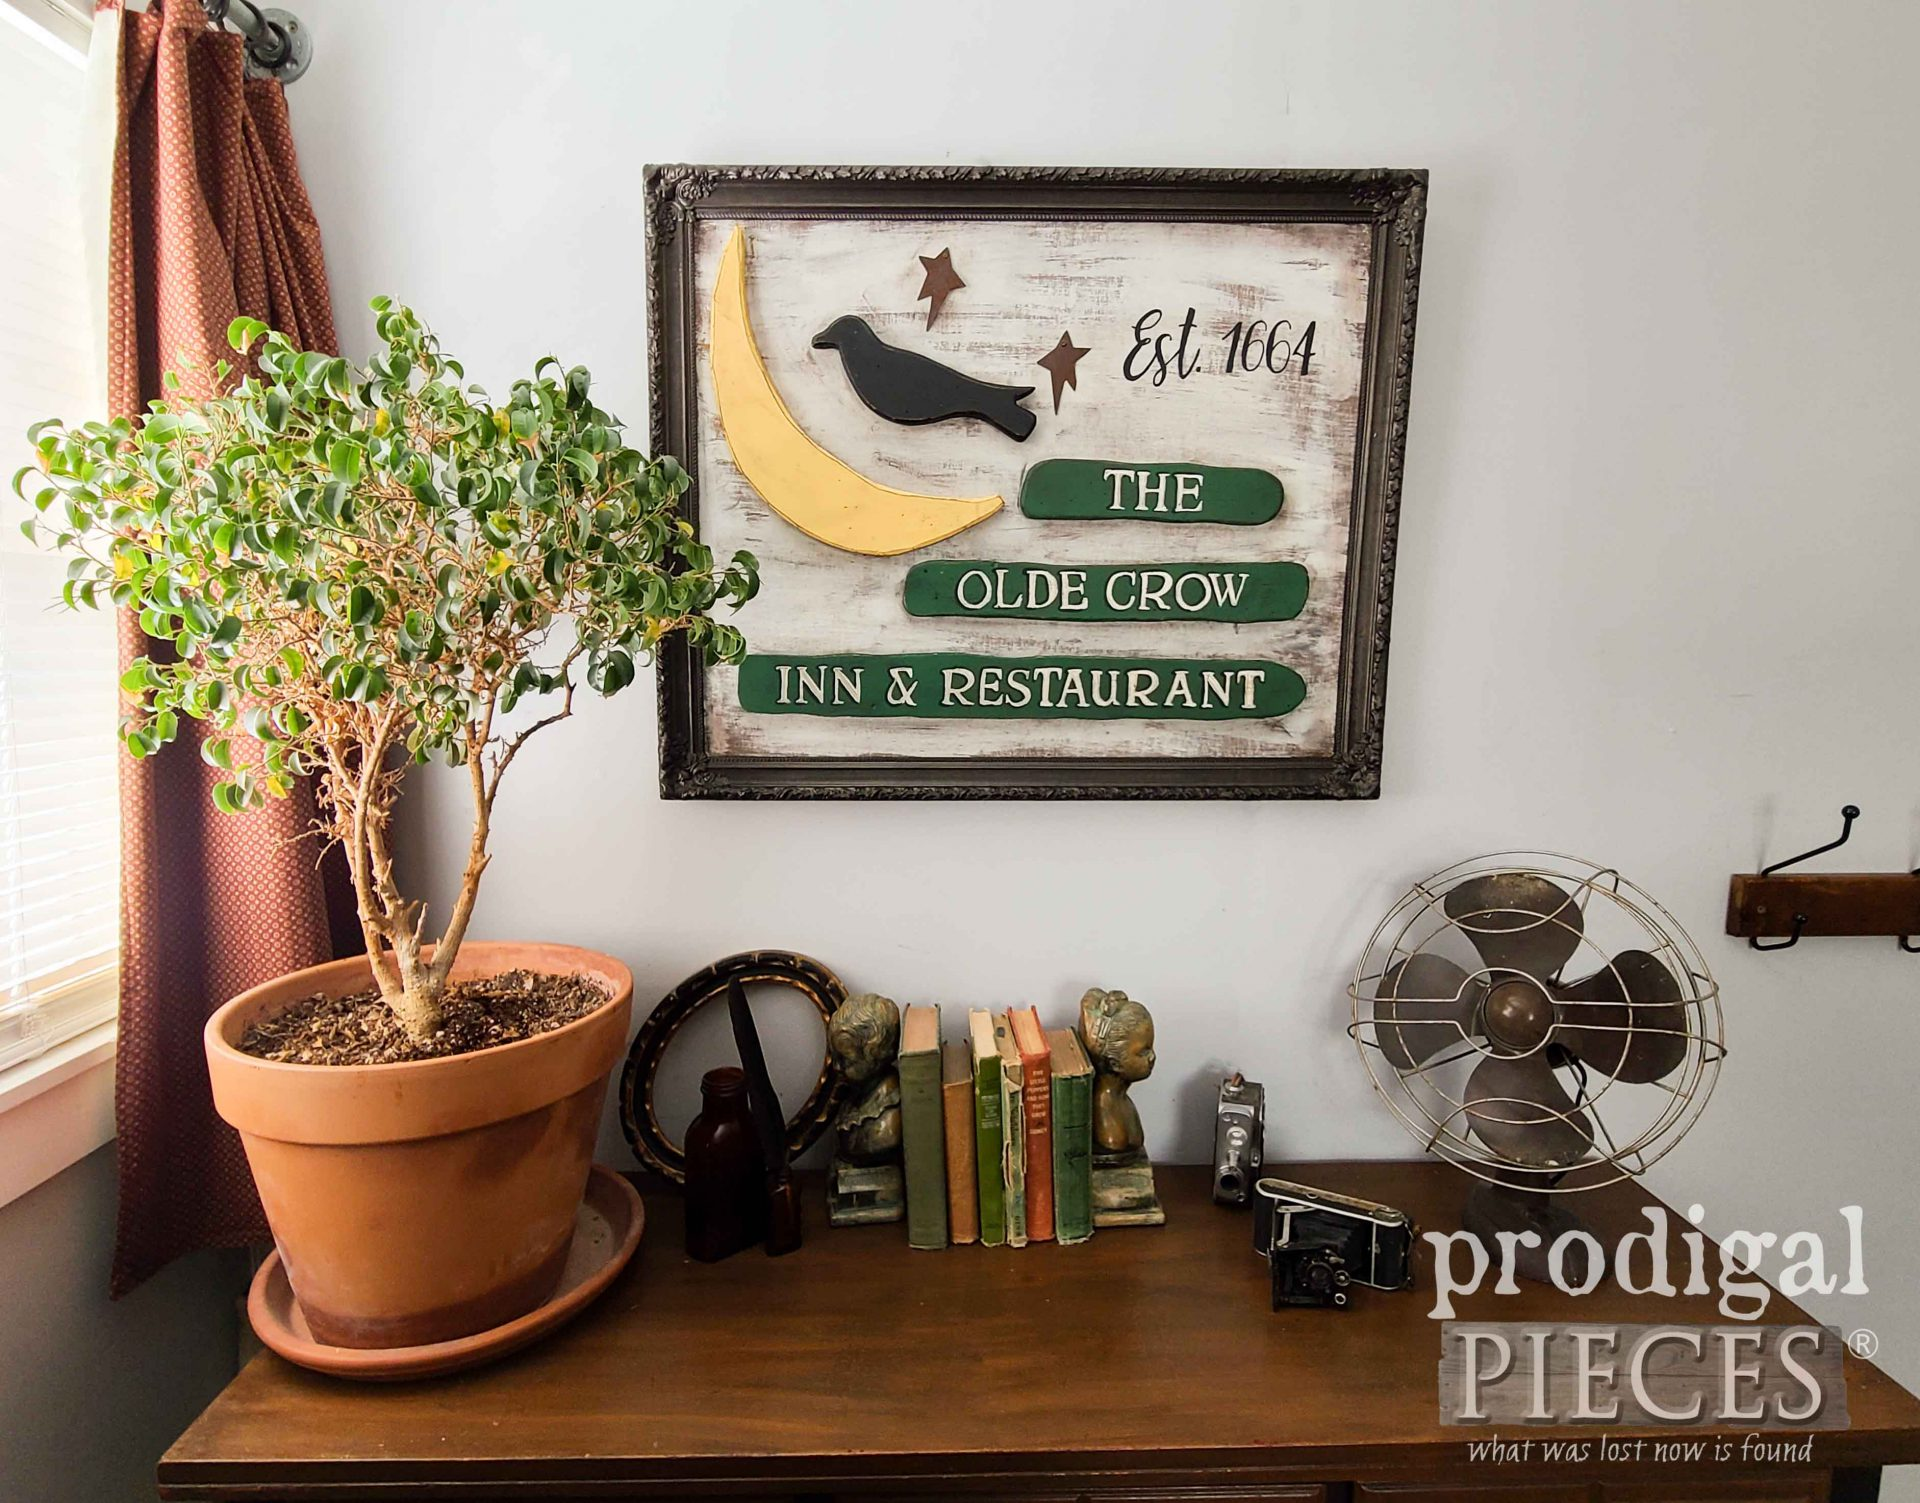 DIY Repurposed Antique Sign from Dated Fall Decor by Larissa of Prodigal Pieces   prodigalpieces.com #prodigalpieces #diy #home #homedecor #farmhouse